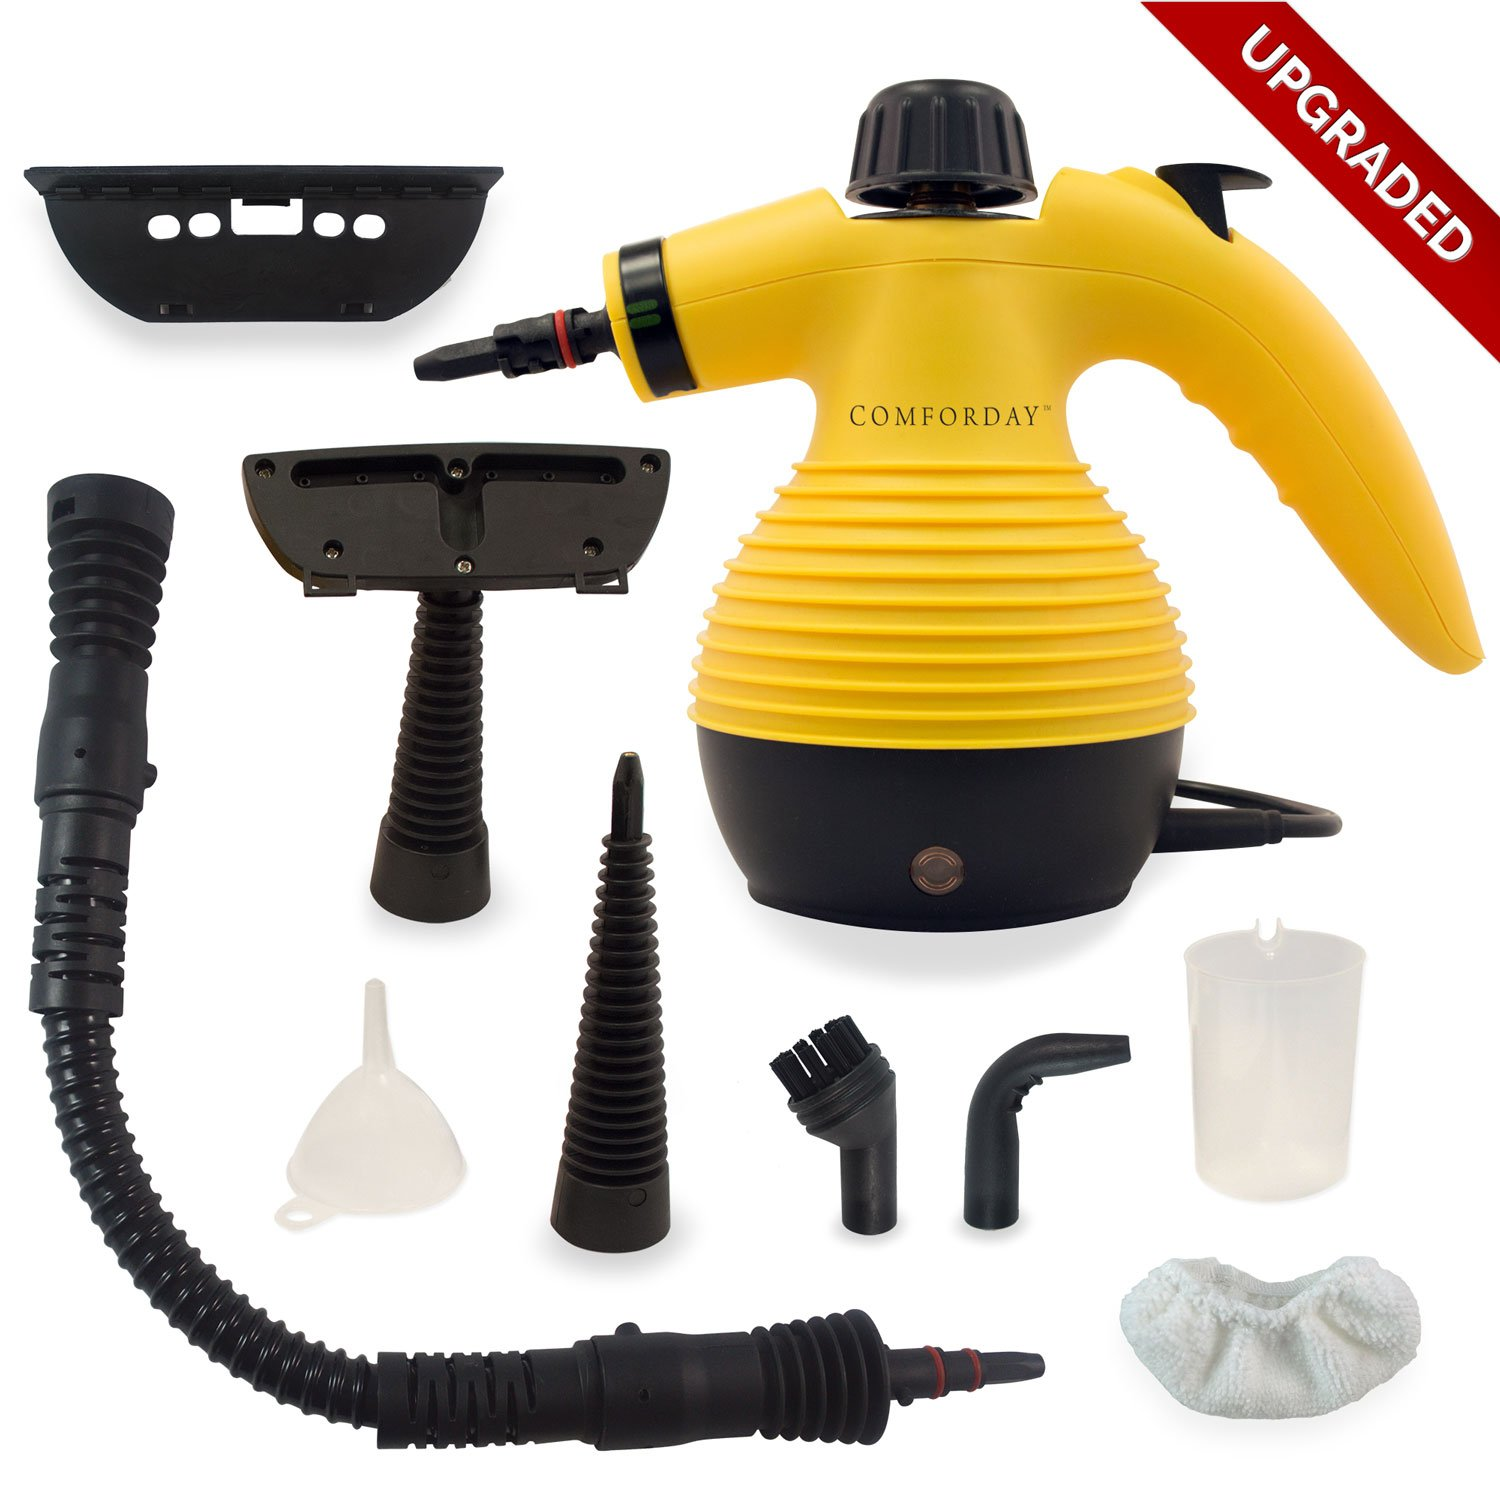 Comfor Electric Easy Handheld Steam Cleaner with 9-Piece Accessories Used to Clean the Doors, Carpets, Curtains, Kitchen Surface and more - image 6 of 6